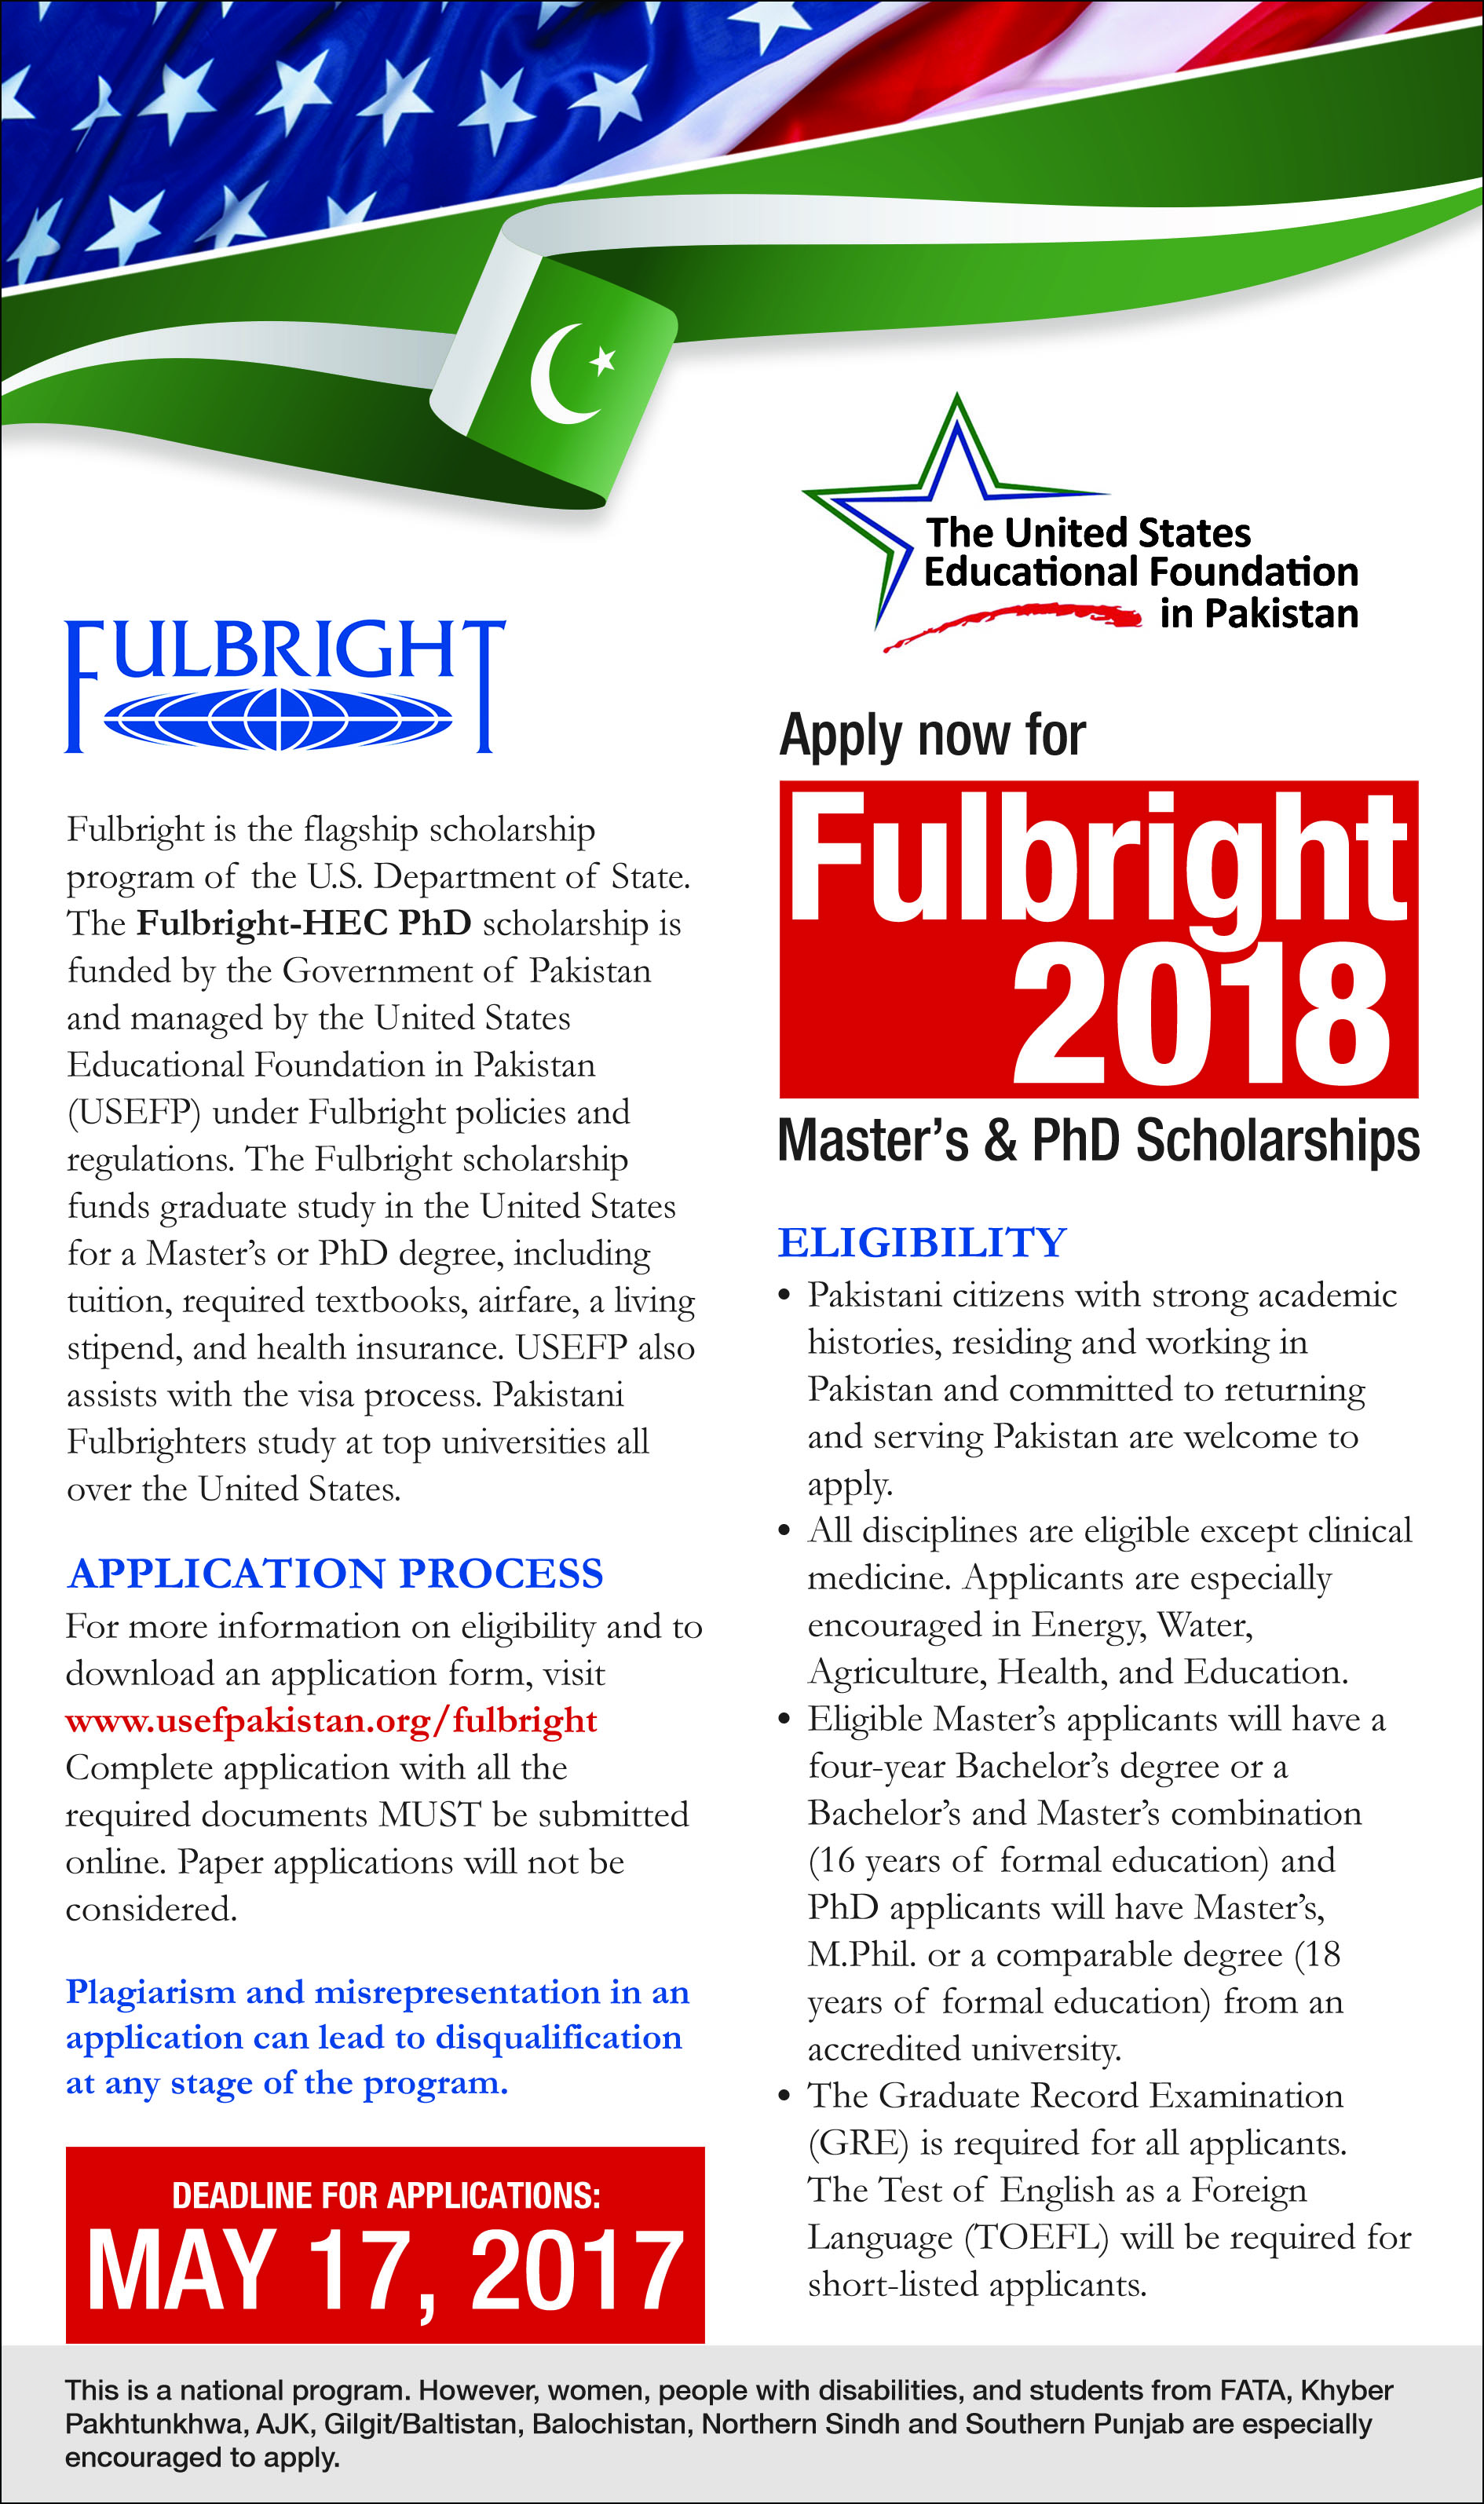 fulbright essay Sponsored by the united states department of state, bureau of educational and  cultural affairs, the fulbright program provides funding for students, scholars,.